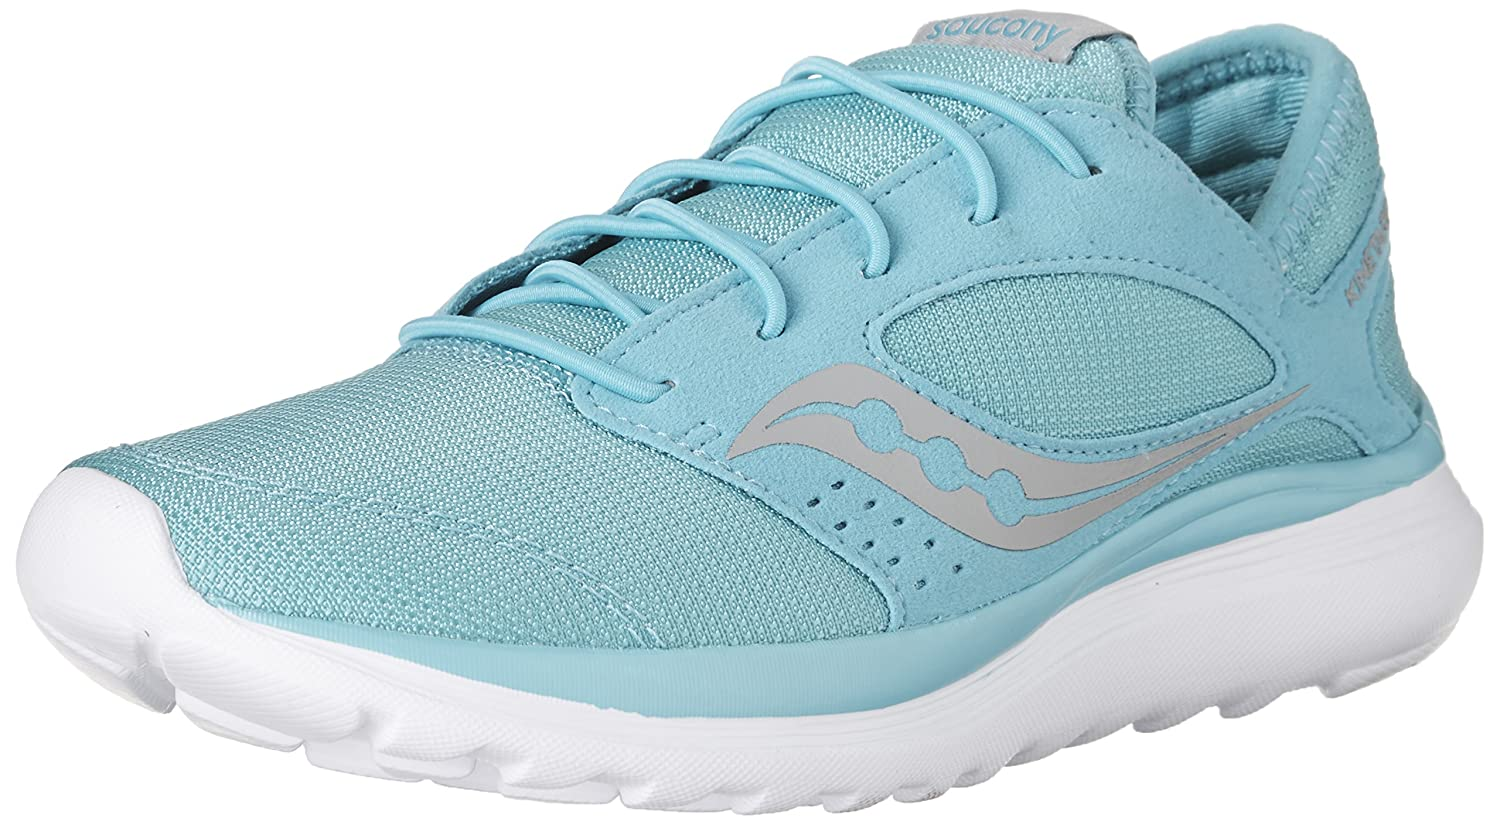 Saucony Women's Kineta Relay Running Shoe B01N2WOOQK 11 B(M) US|Teal